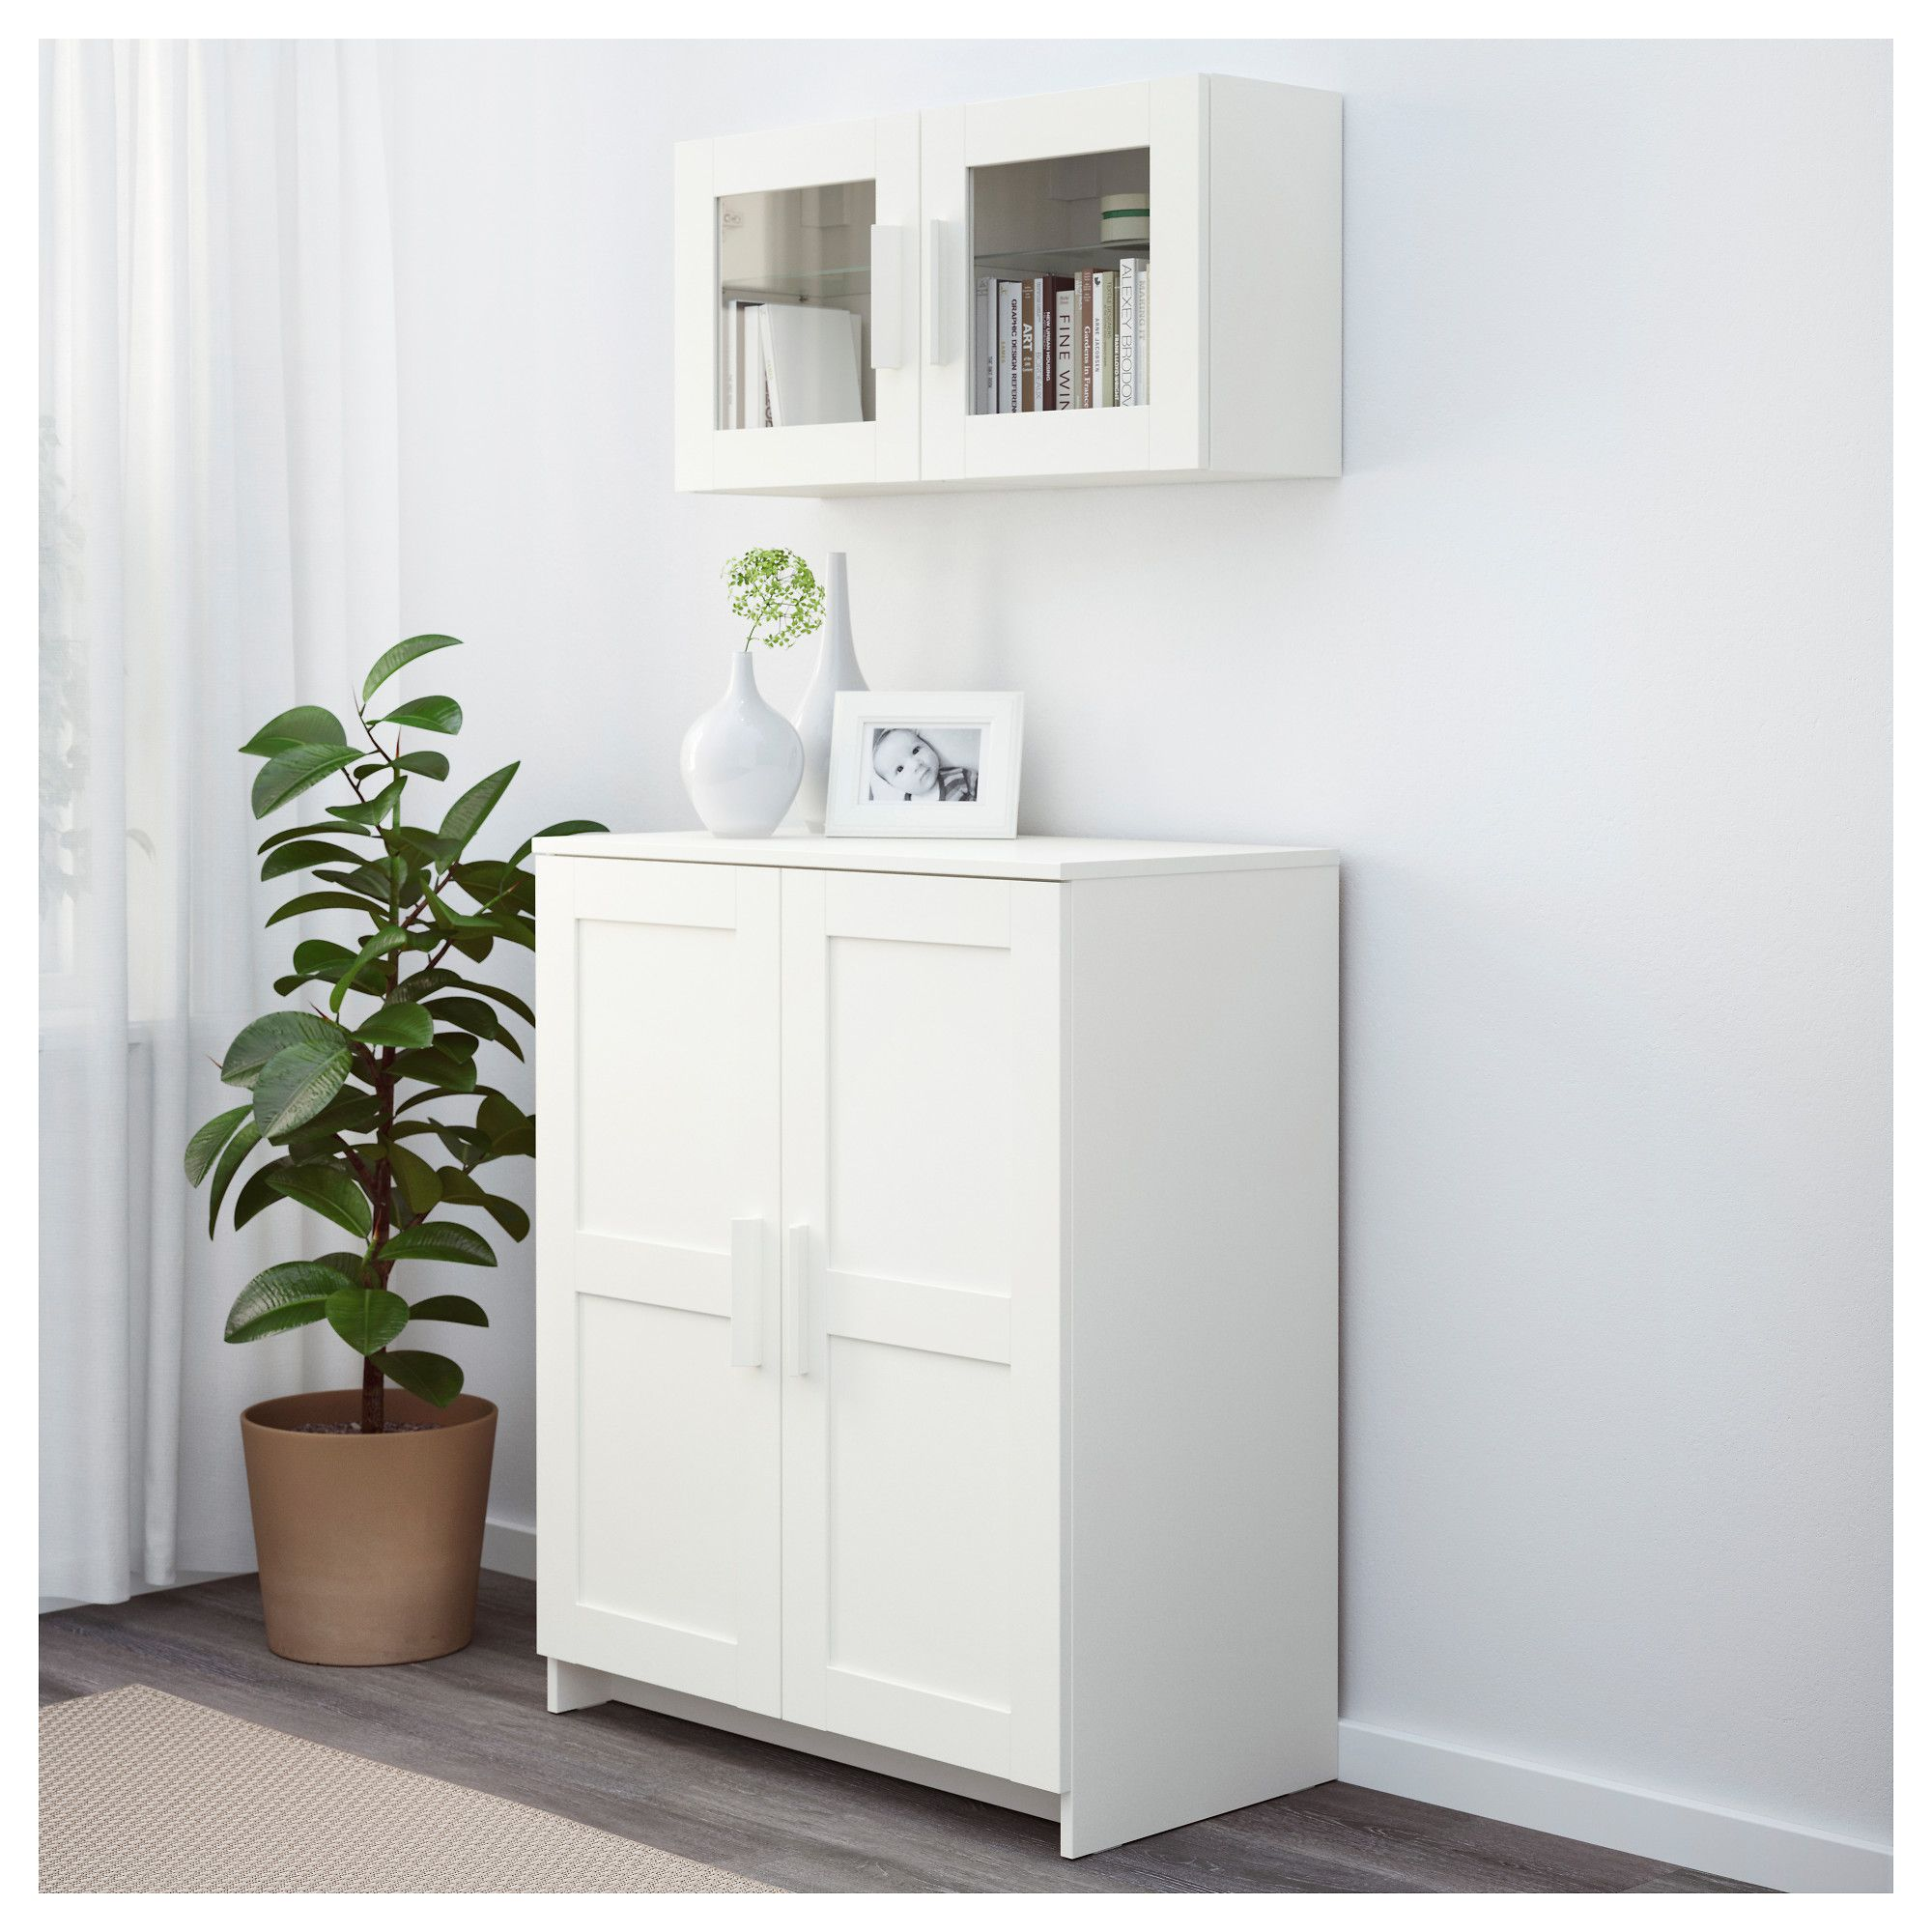 Bedroom Furniture Chairs Bedroom Hanging Cabinet Design Bedroom View From Bed D I Y Bedroom Decor: BRIMNES Cabinet With Doors White IKEA In 2019